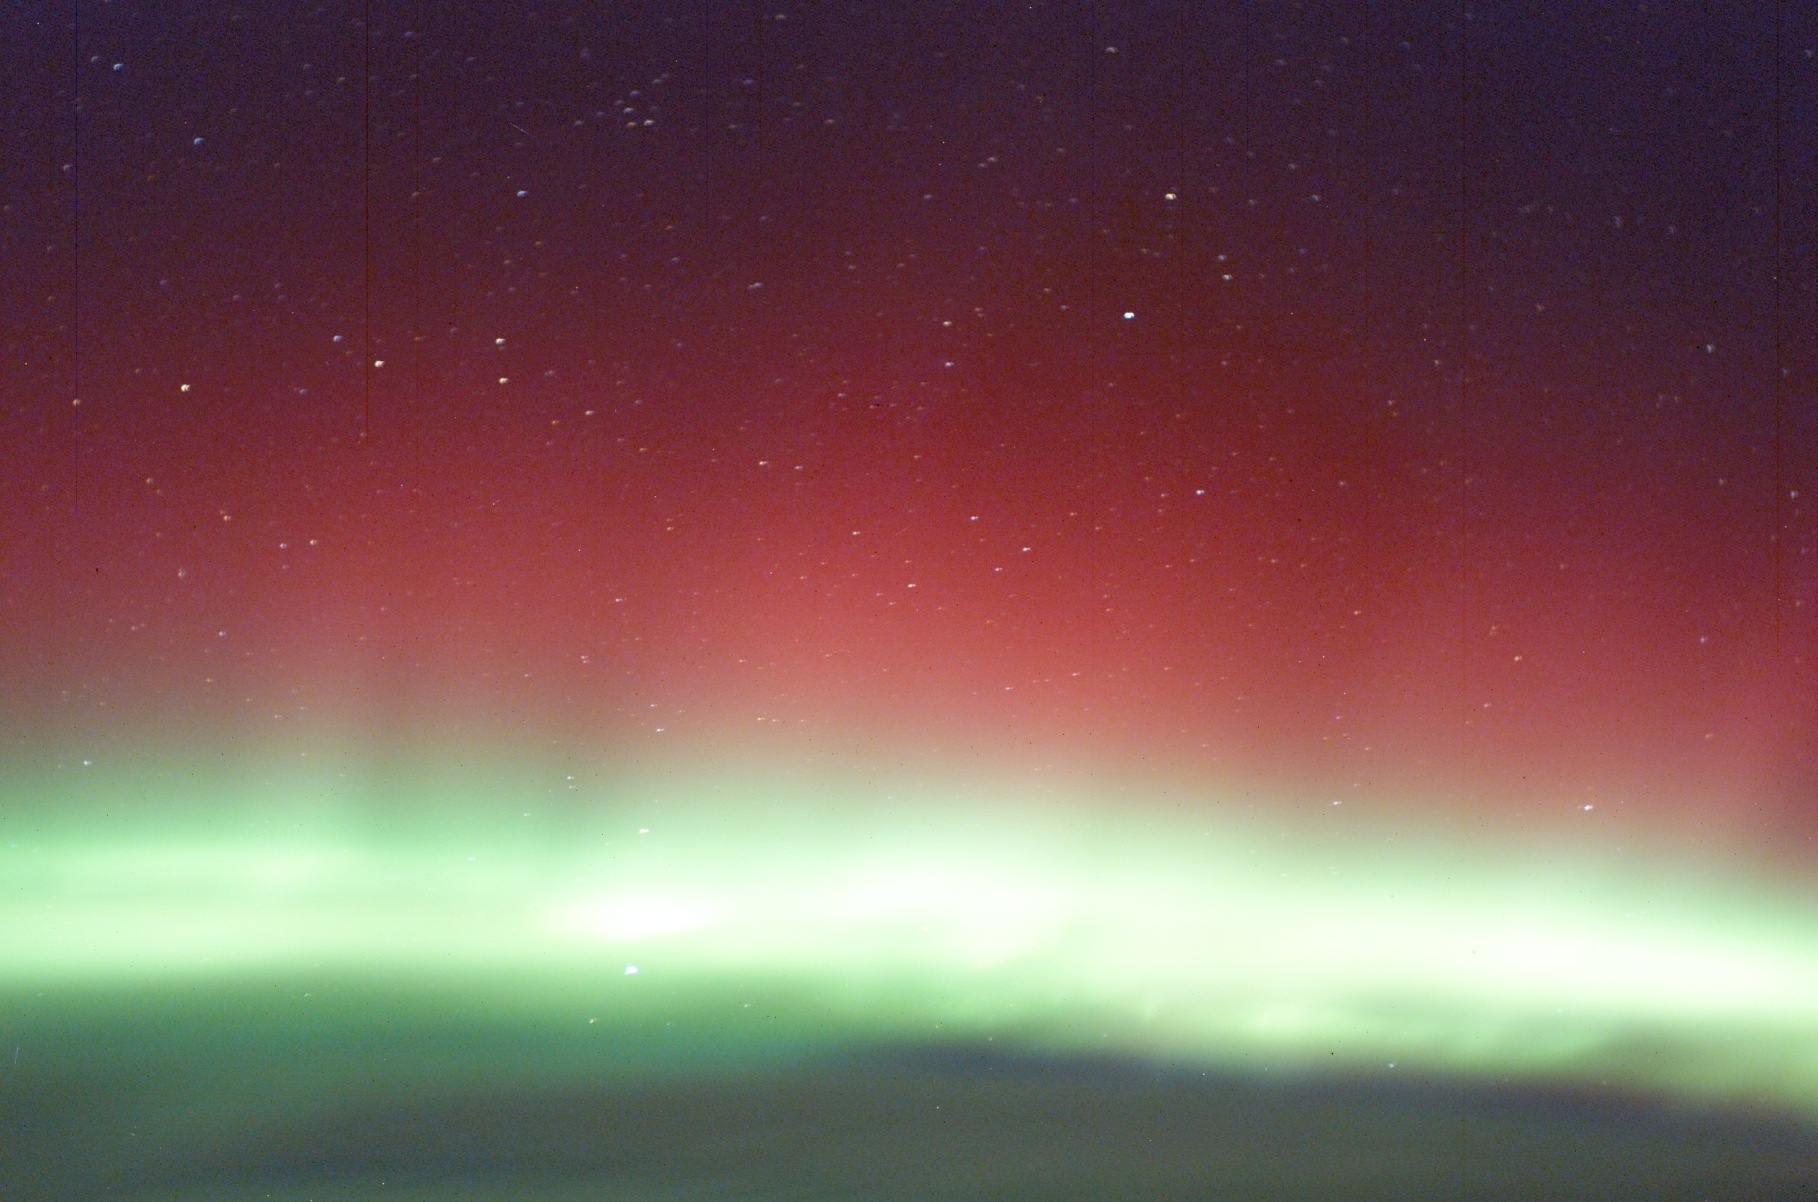 NASA Aurora Borealis Forecast (page 3) - Pics about space